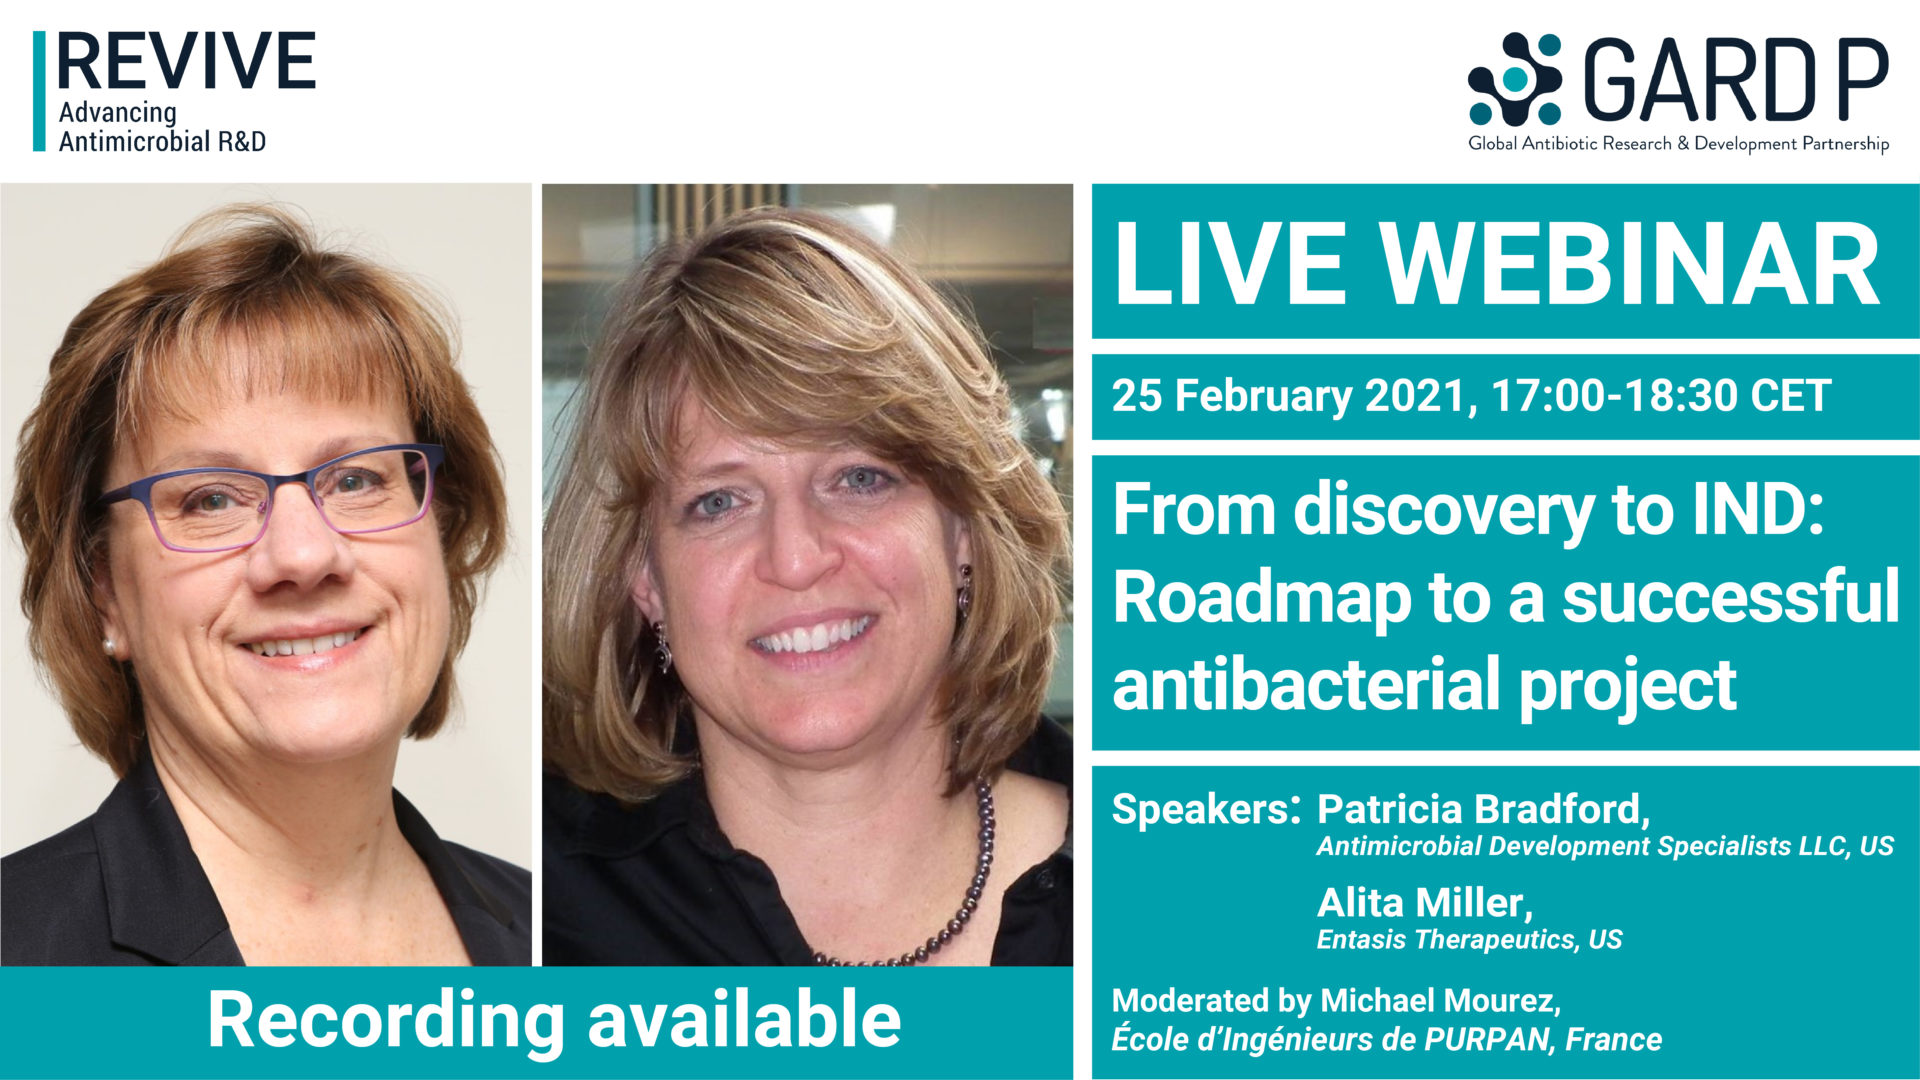 From discovery to IND: Roadmap to a successful antibacterial project